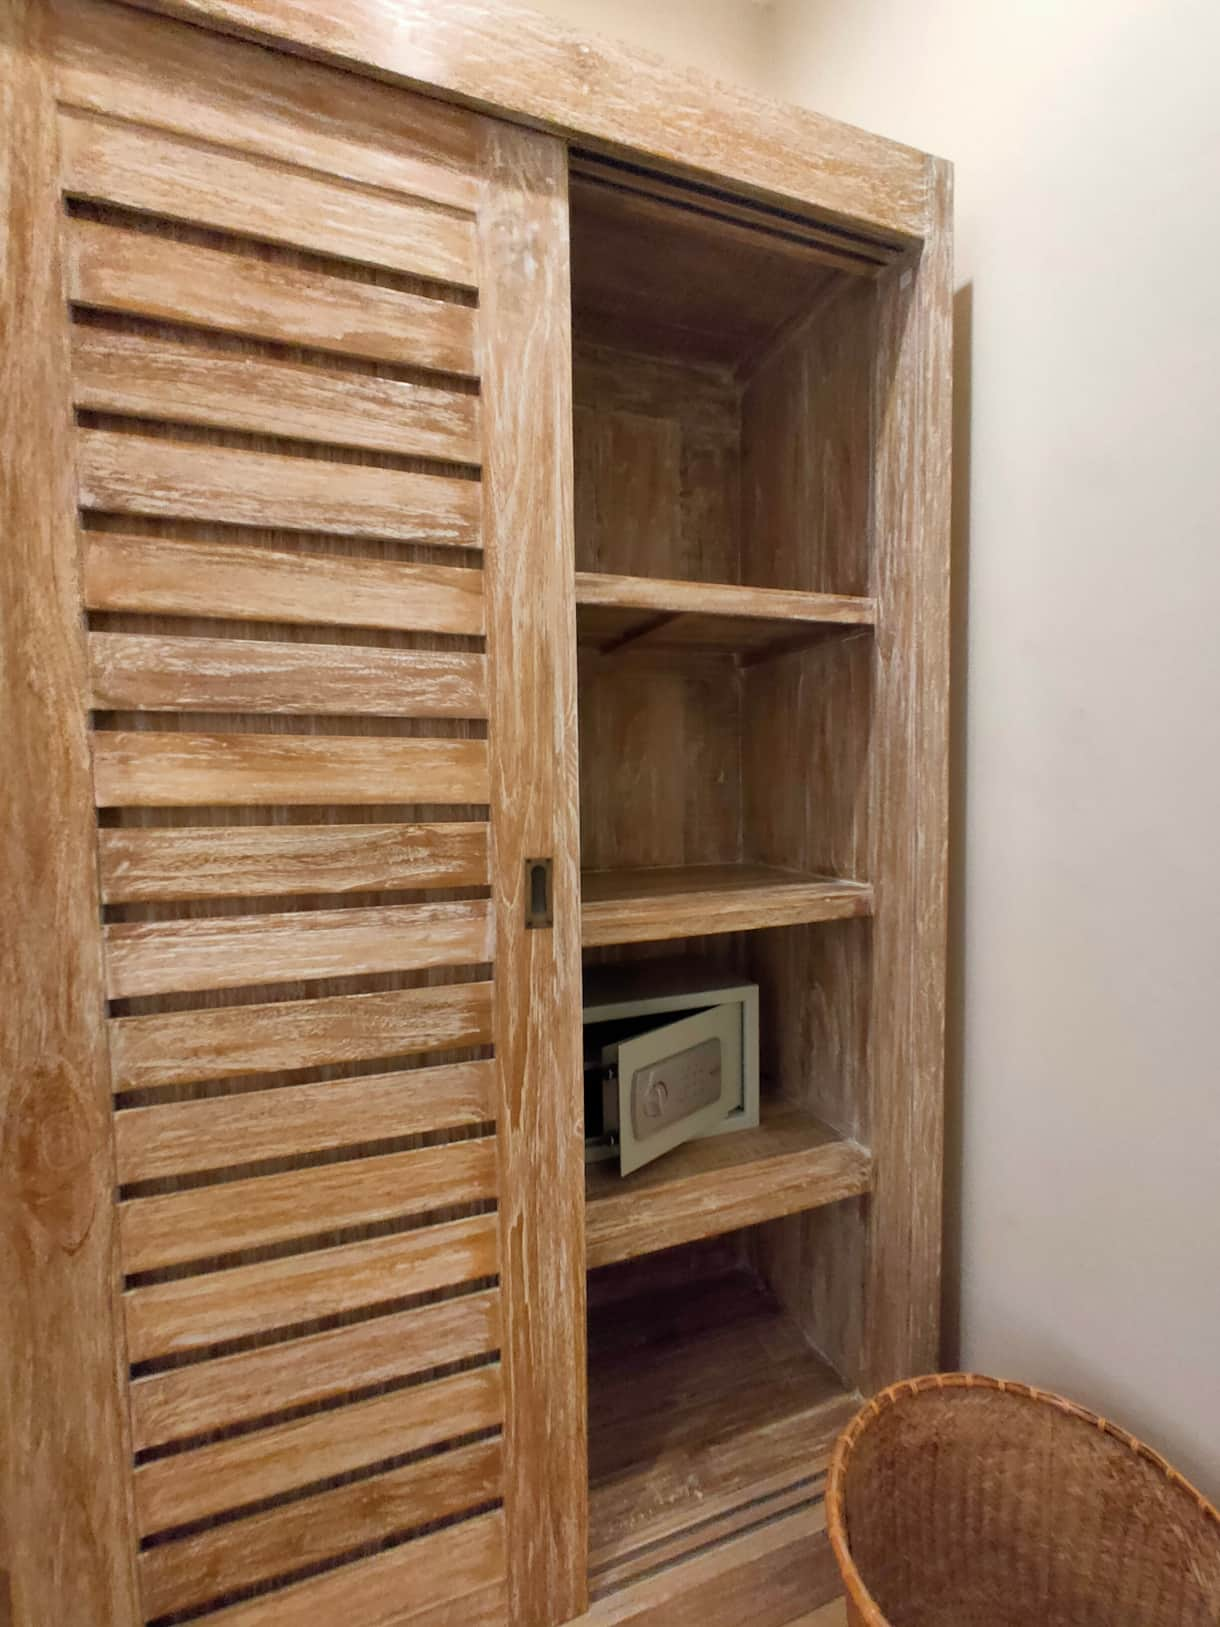 Wardrobe and safe-box